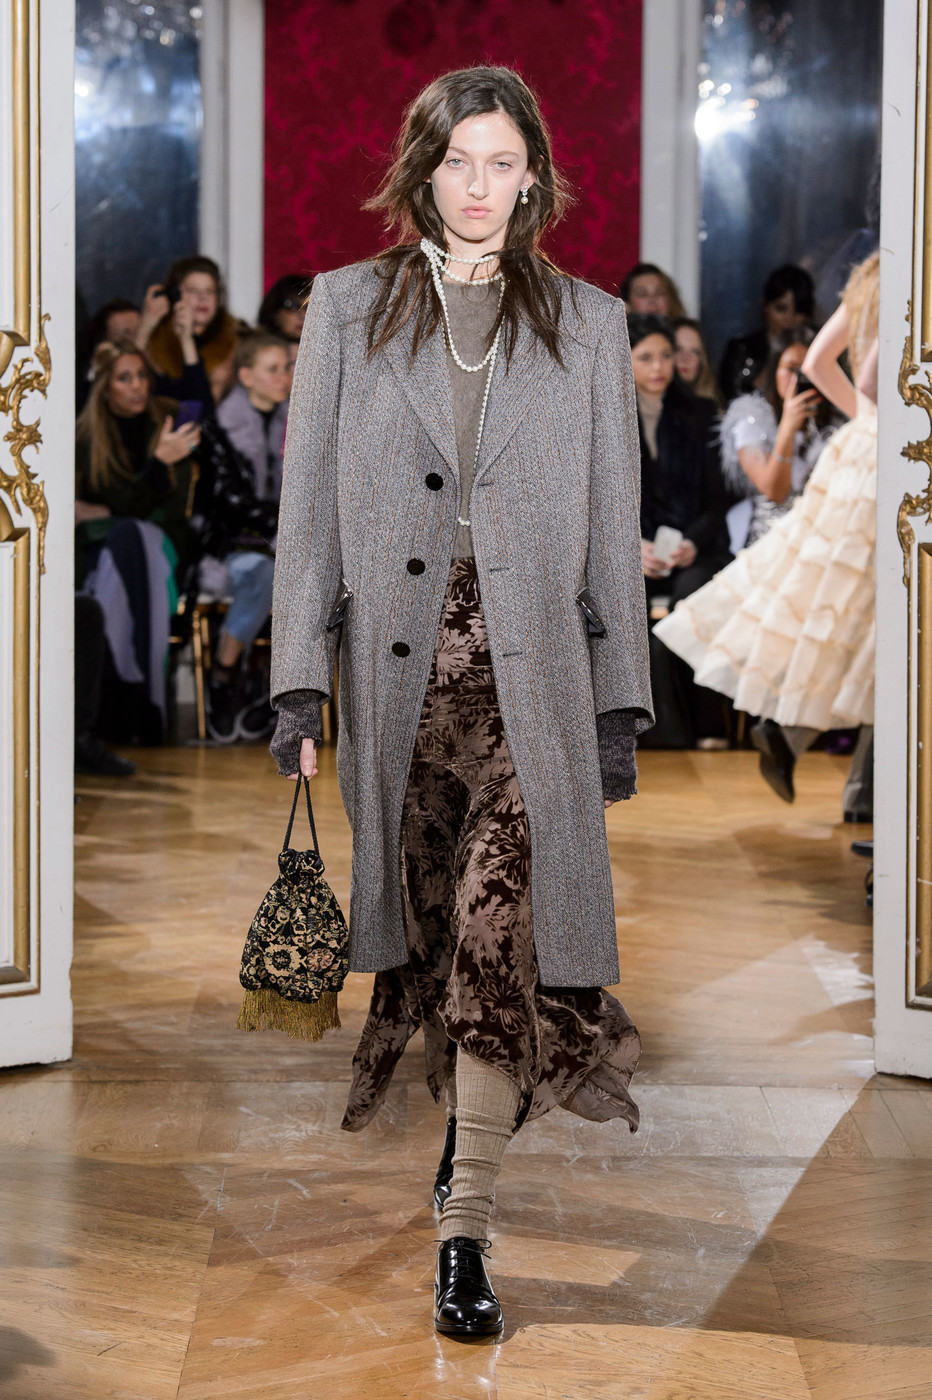 John Galliano at Paris Fashion Week Fall 2018